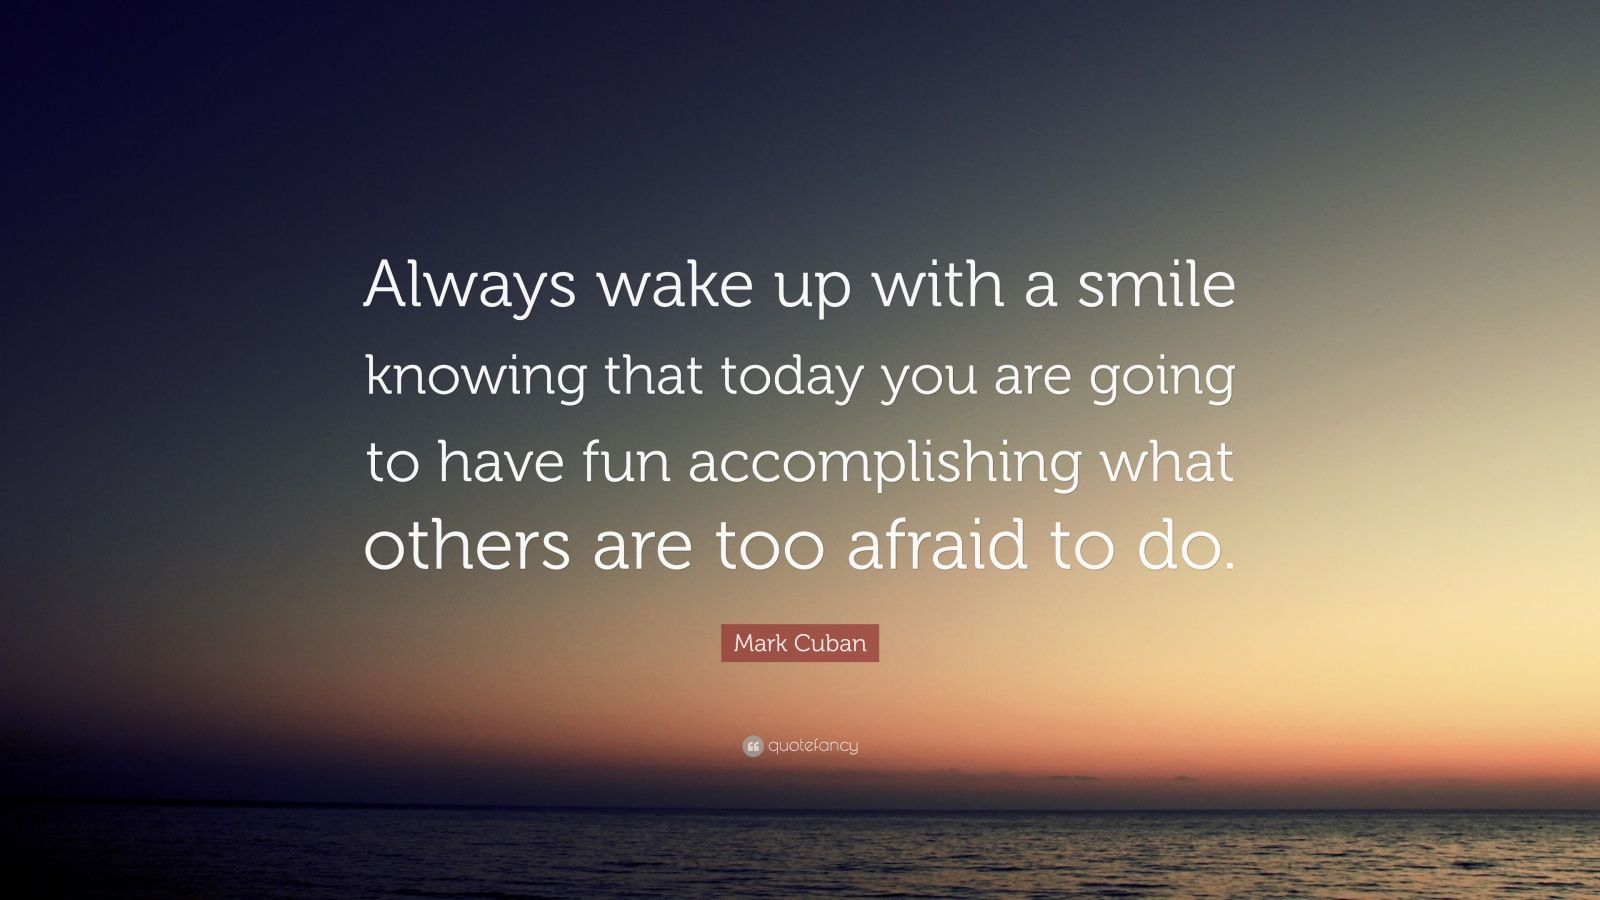 """Mark Cuban Quote: """"Always wake up with a smile knowing that today you are going to have fun accomplishing what others are too afraid to do."""""""